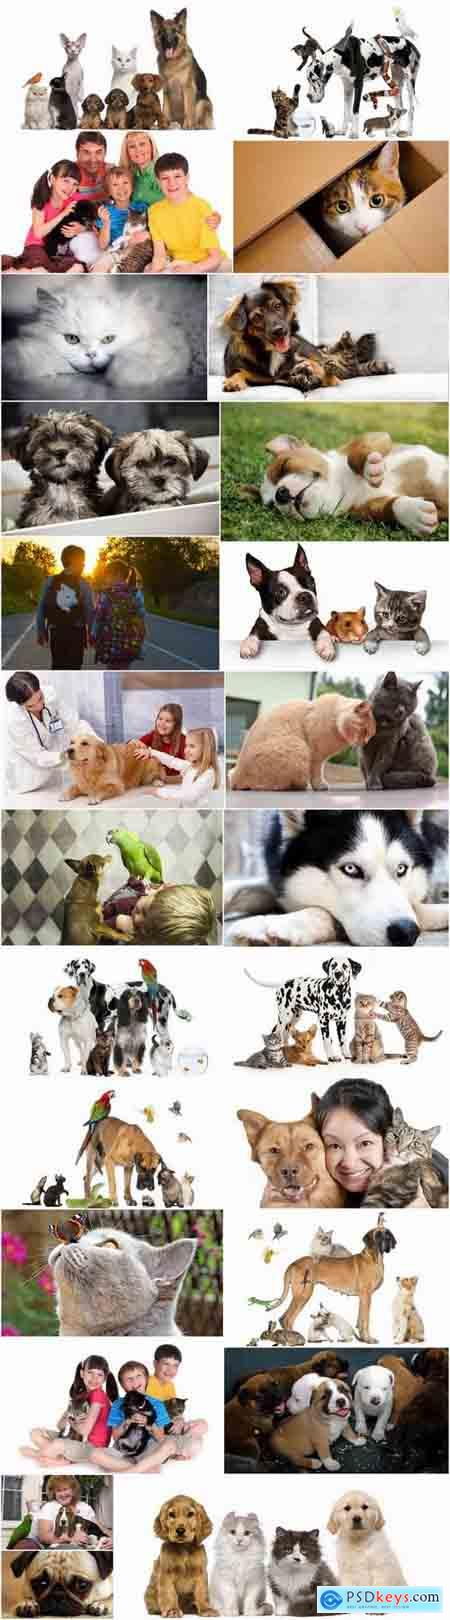 Pets pet dog cat animal bird 25 HQ Jpeg